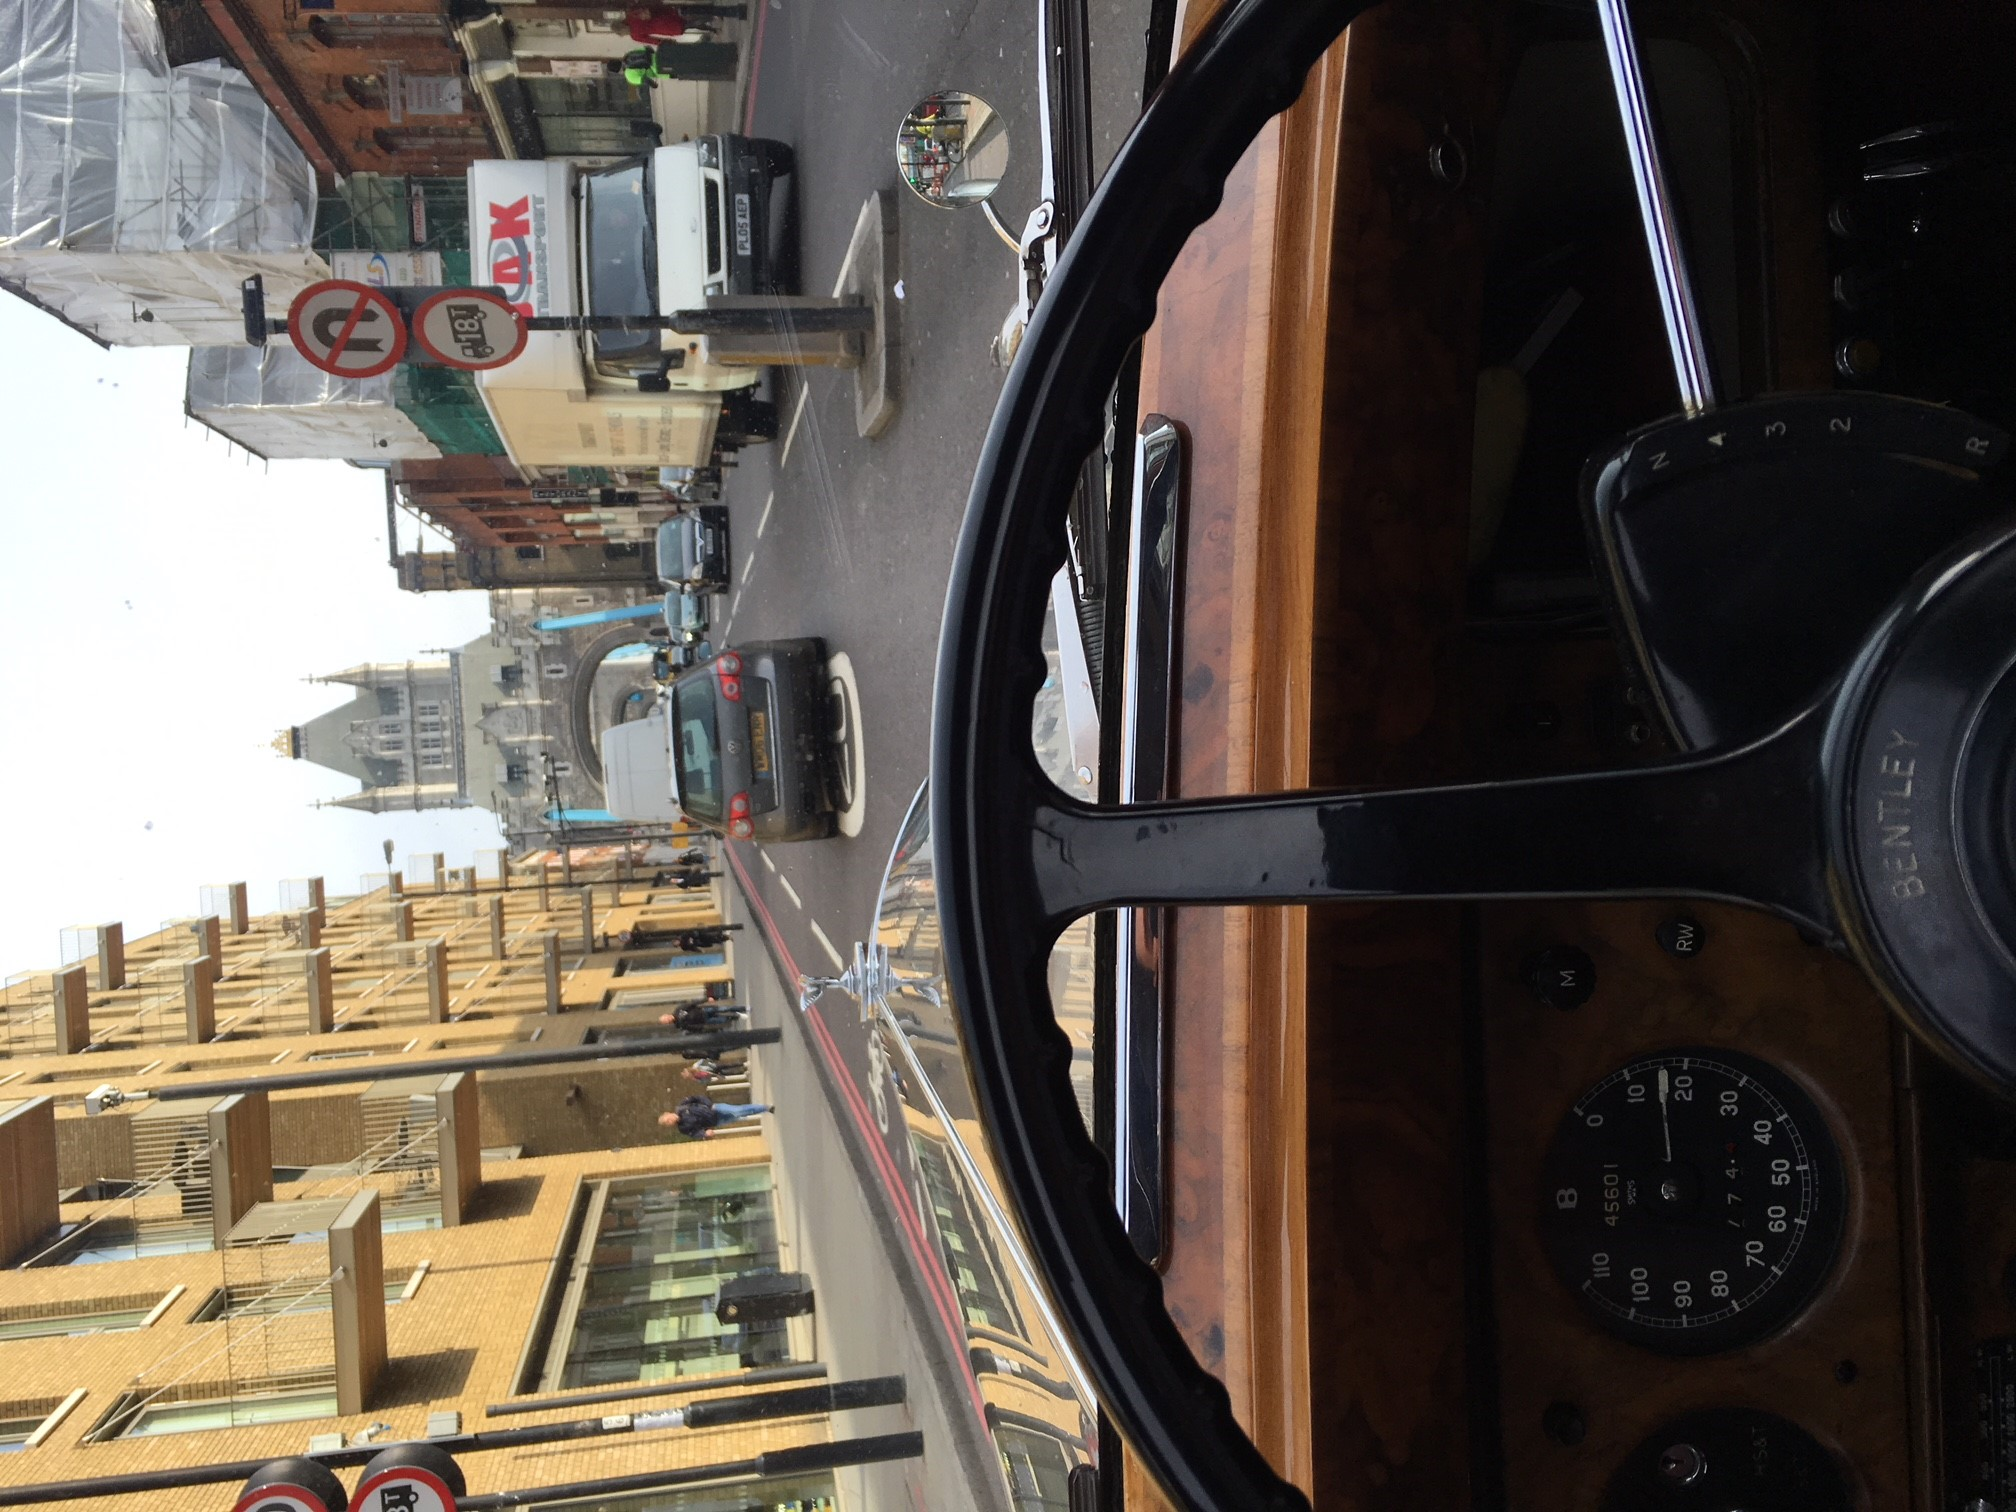 Driving over Tower Bridge